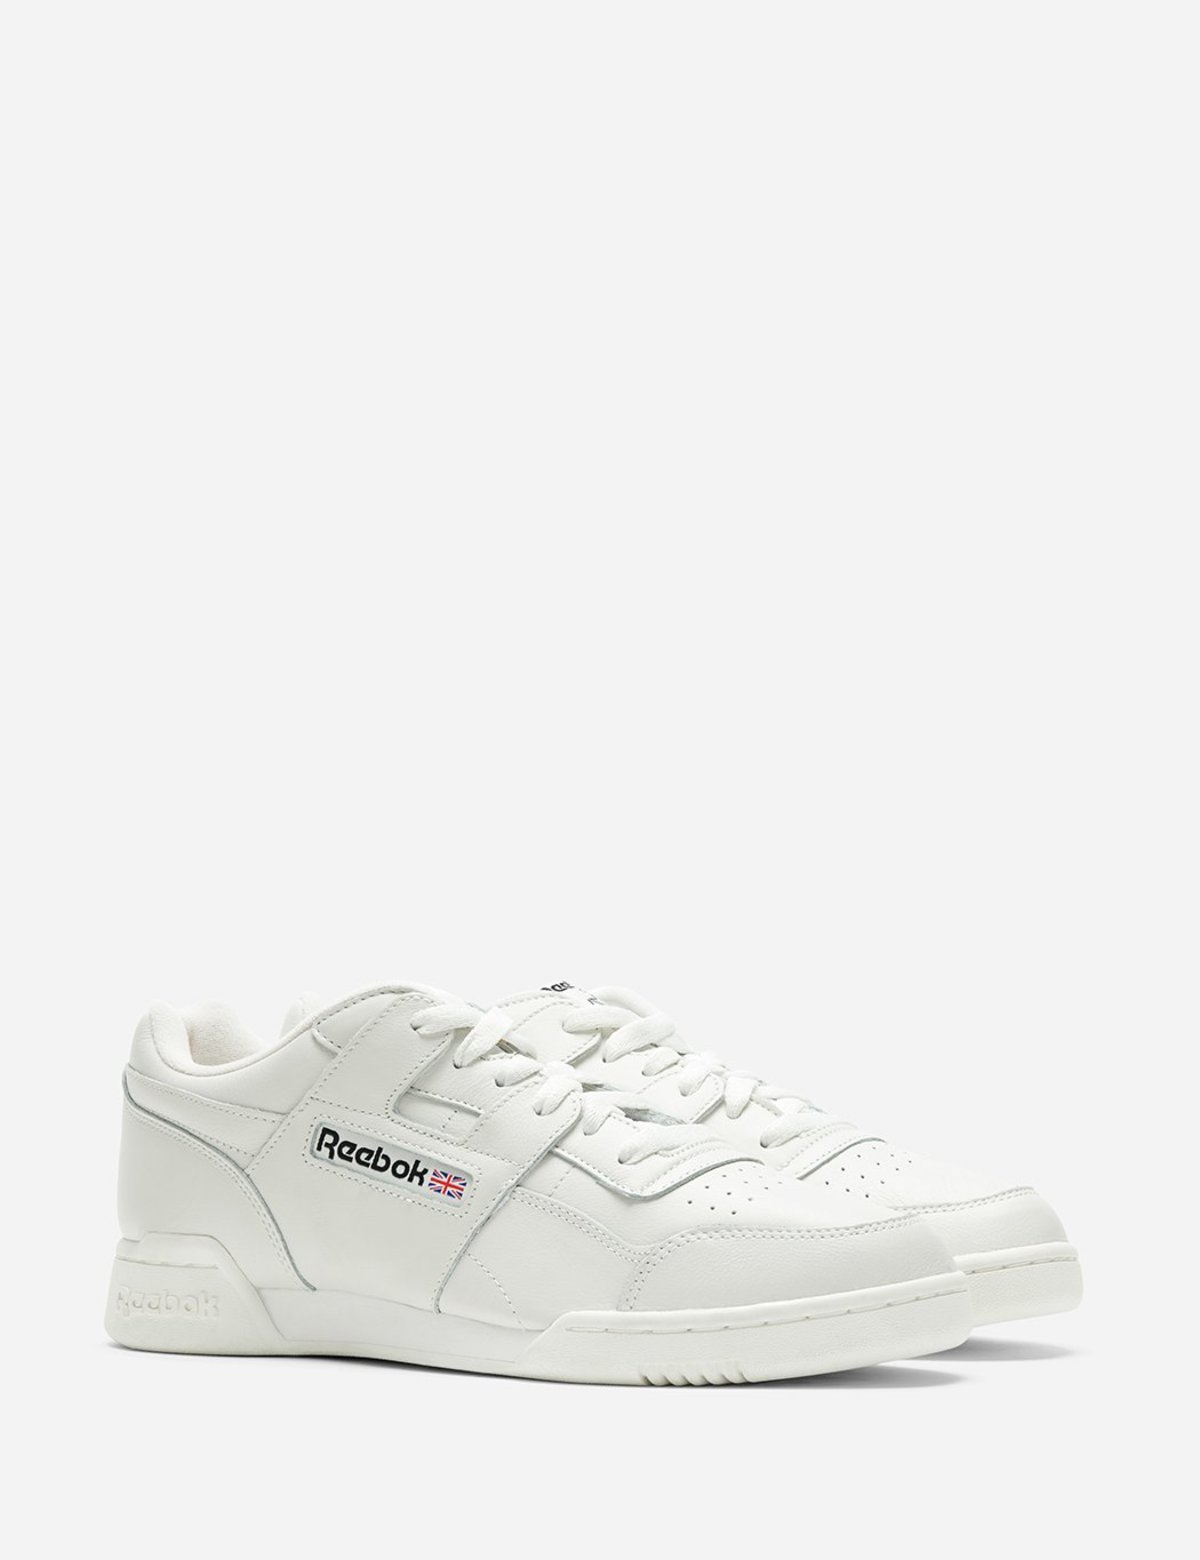 3c63cbf2f9a Reebok Workout Plus MU (CN4966) - Chalk Black